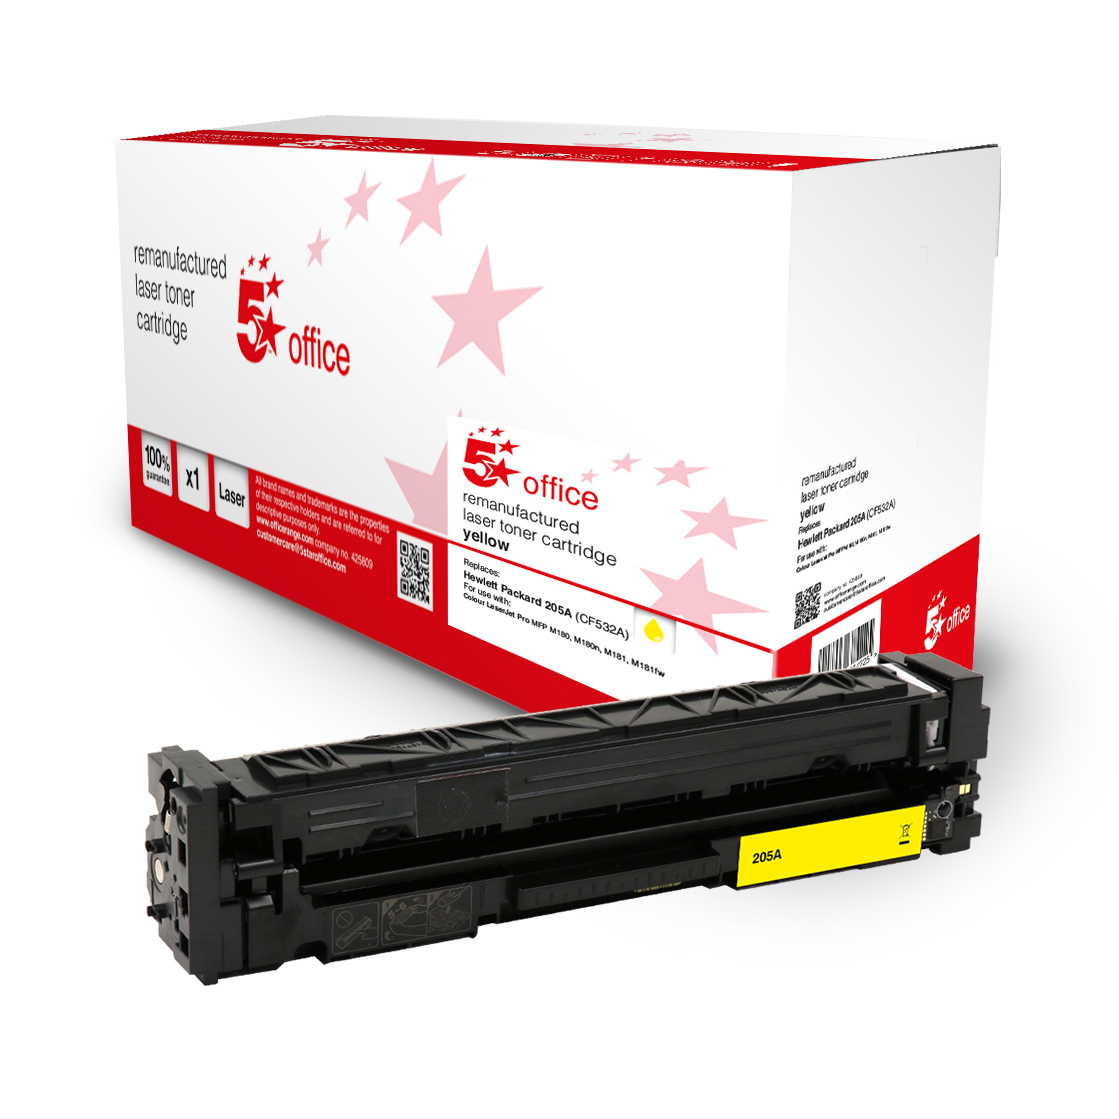 Laser Toner Cartridges 5 Star Office Remanufactured Toner Cartridge Page Life Yellow 900pp HP 205A CF532A Alternative